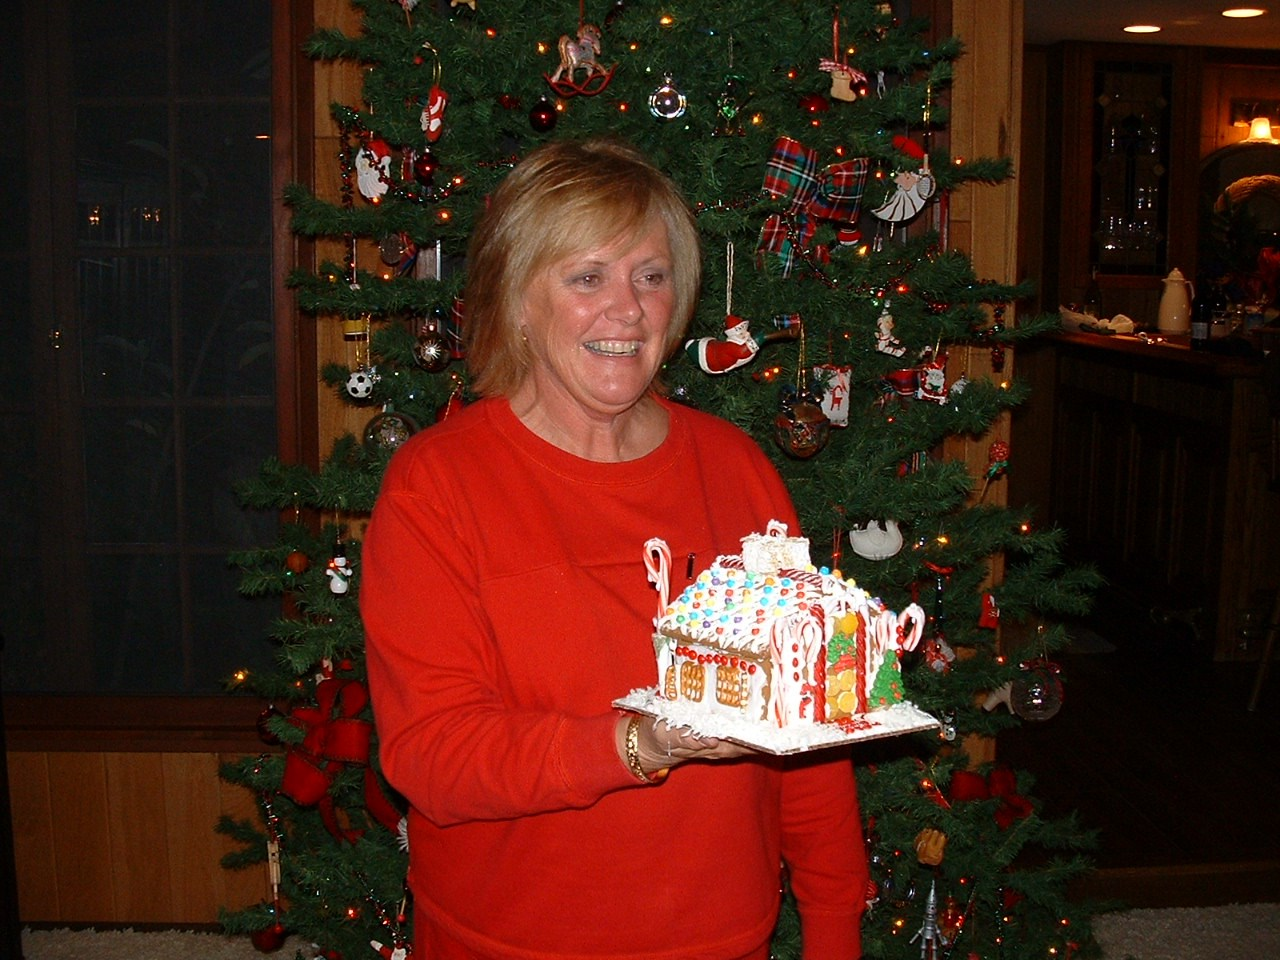 One of Lori's always fabulous gingerbread house decorating parties......